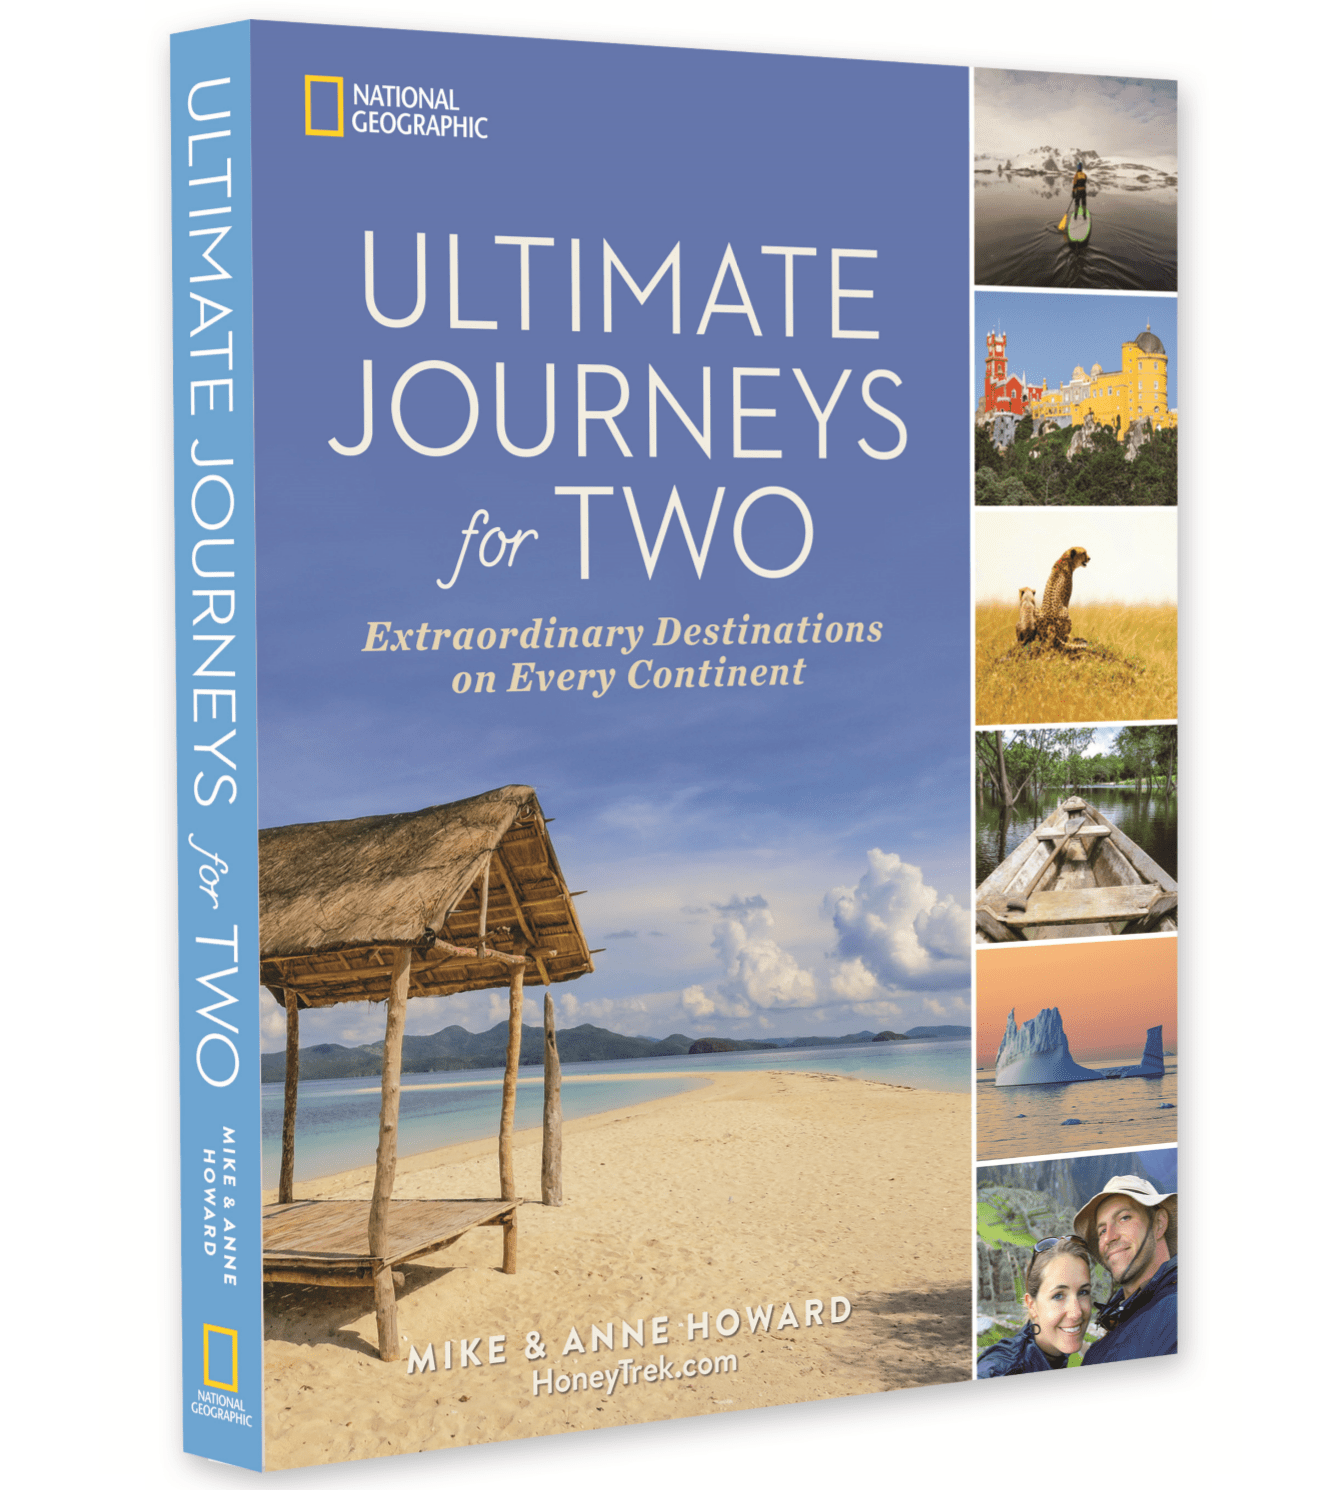 """Ultimate Journeys for Two"" by Mike & Anne Howard is out now. Images by HoneyTrek.com."